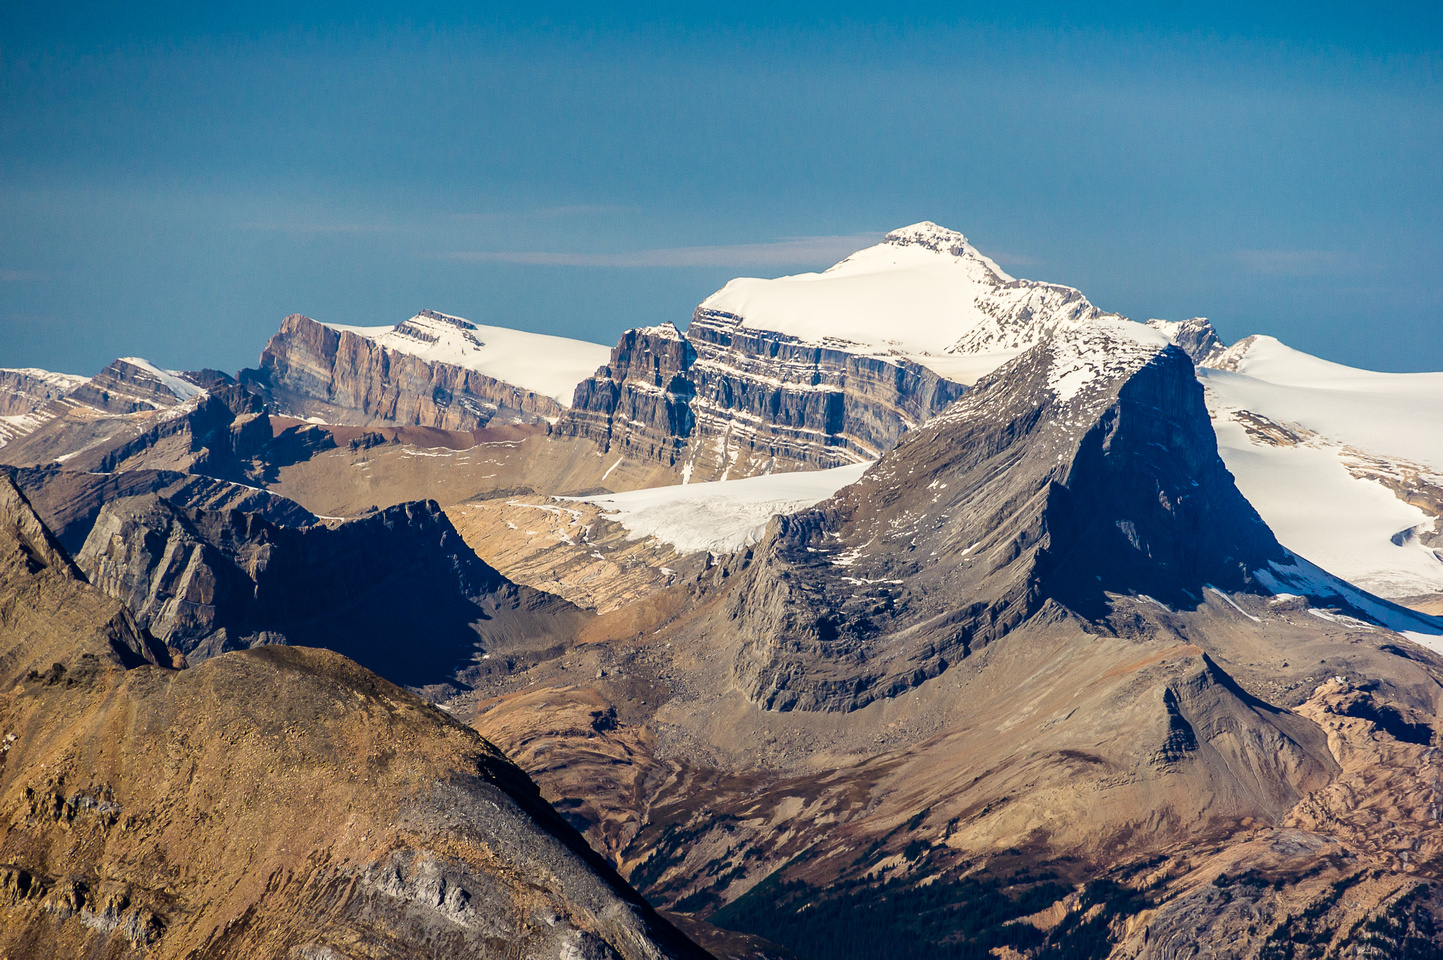 Mount Niles in the foreground with the mighty Mount Balfour directly behind and Gordon to the left.